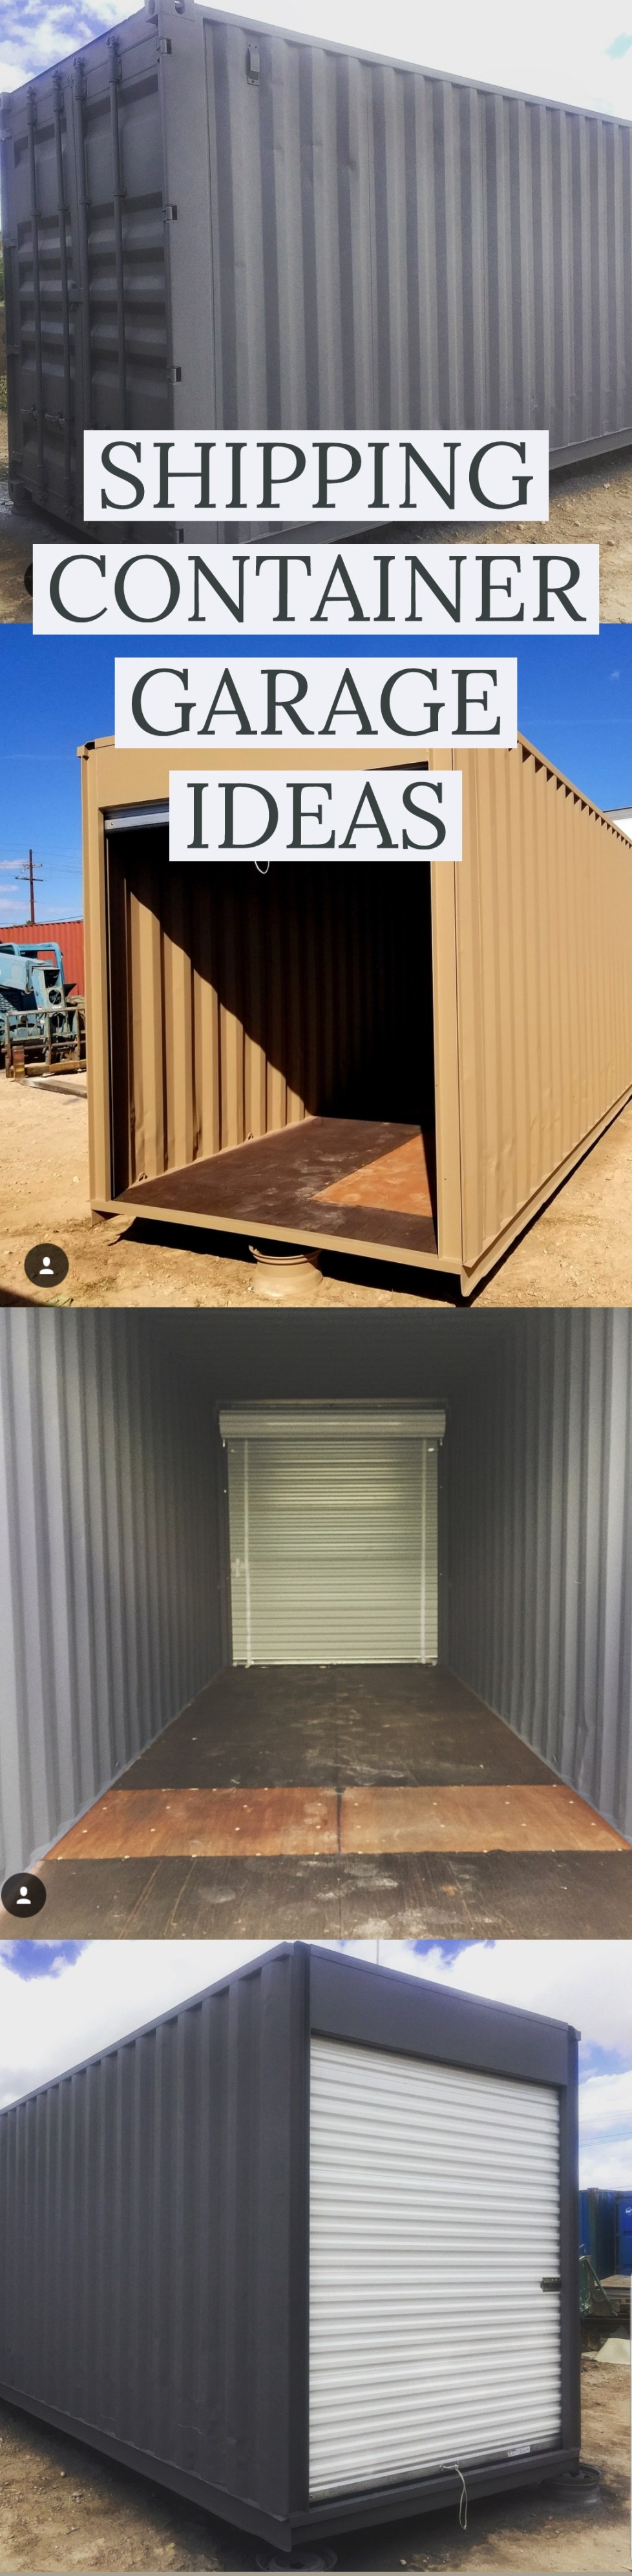 2020 Cool Shipping Container Garage Conversion Plans Amp Ideas